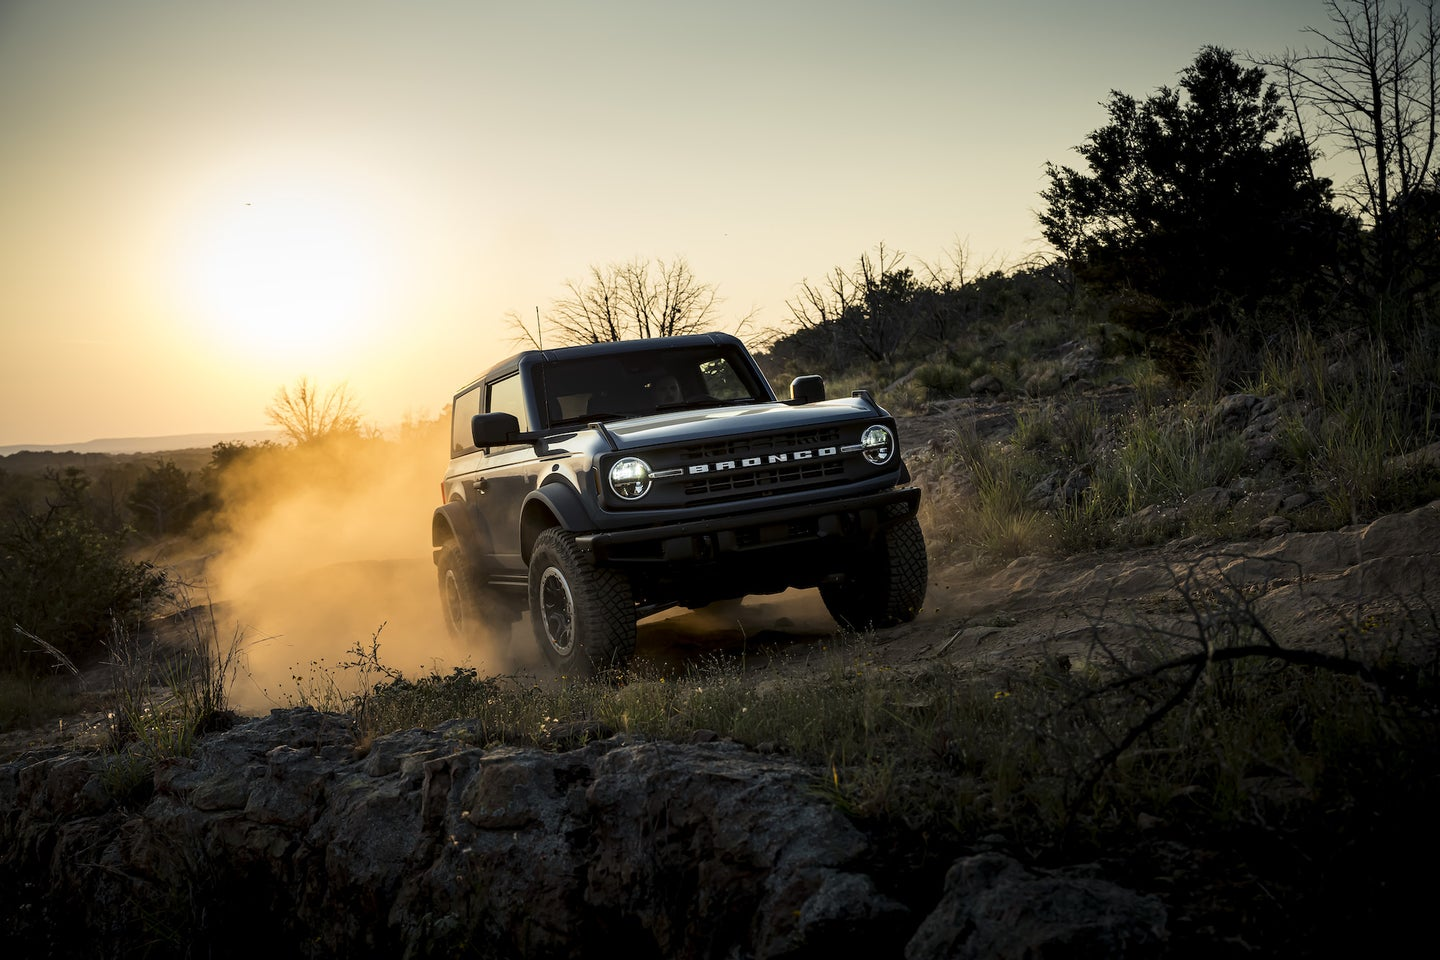 The 2021 Ford Bronco lives up to its massive hype